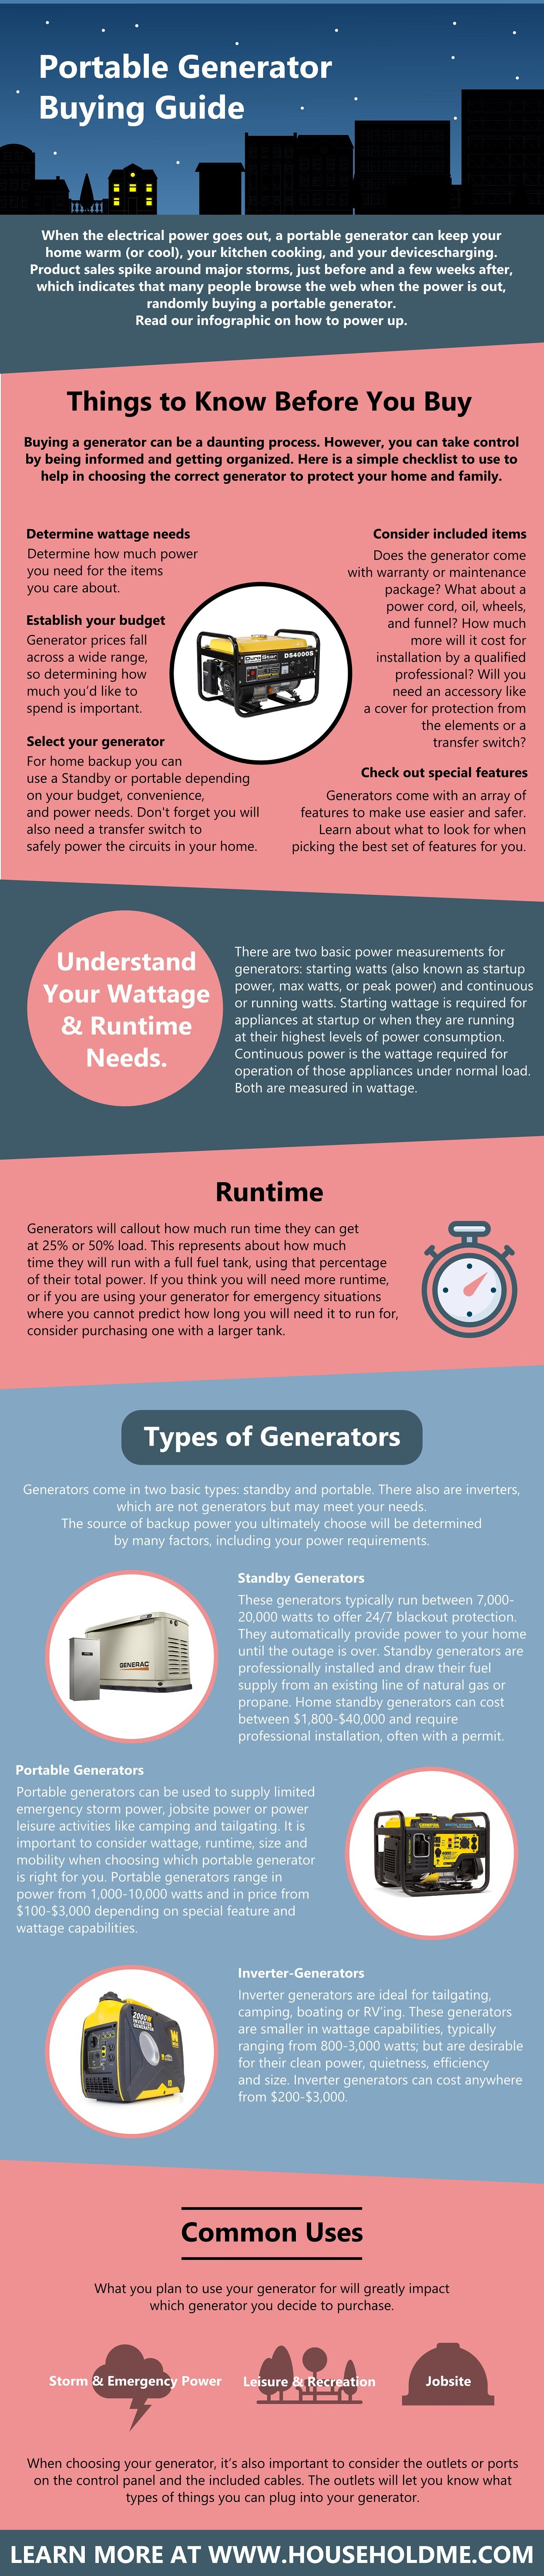 Portable Generator Buying Guide Infographic HouseholdMe